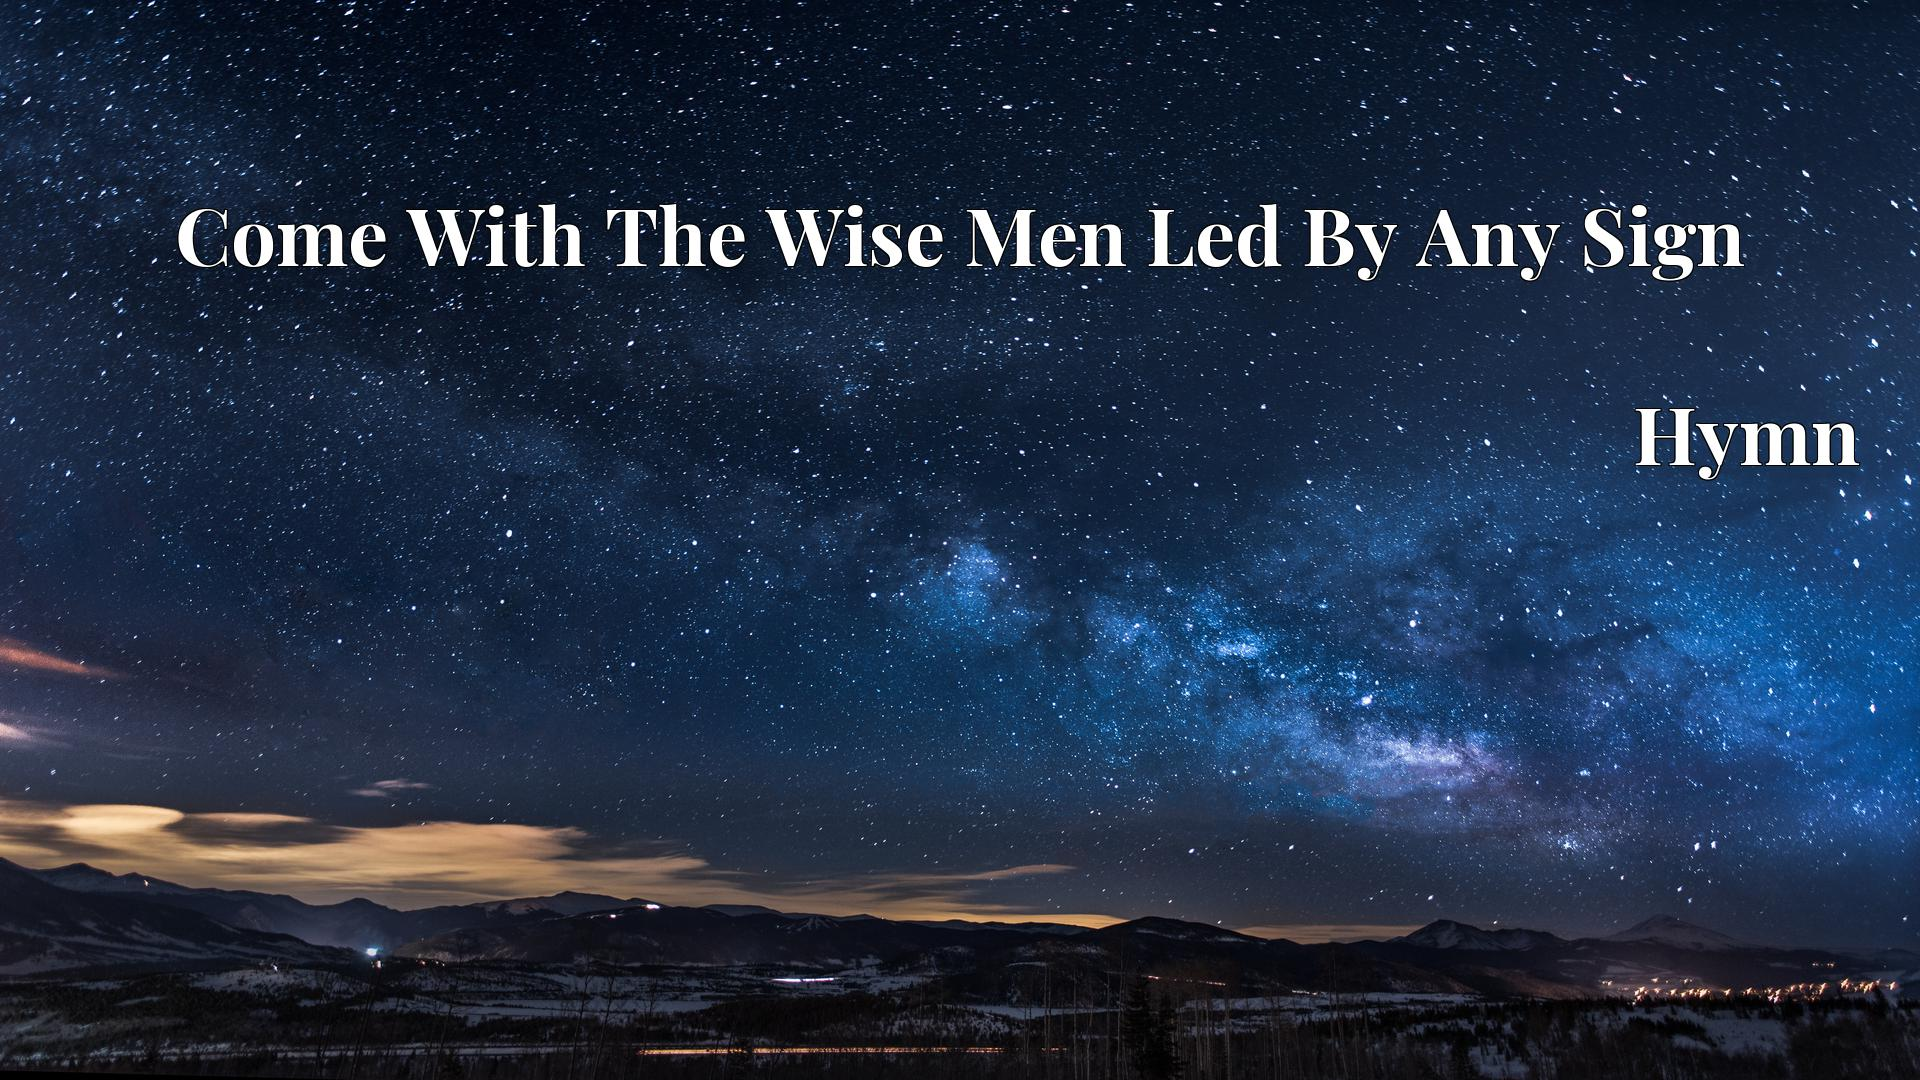 Come With The Wise Men Led By Any Sign - Hymn